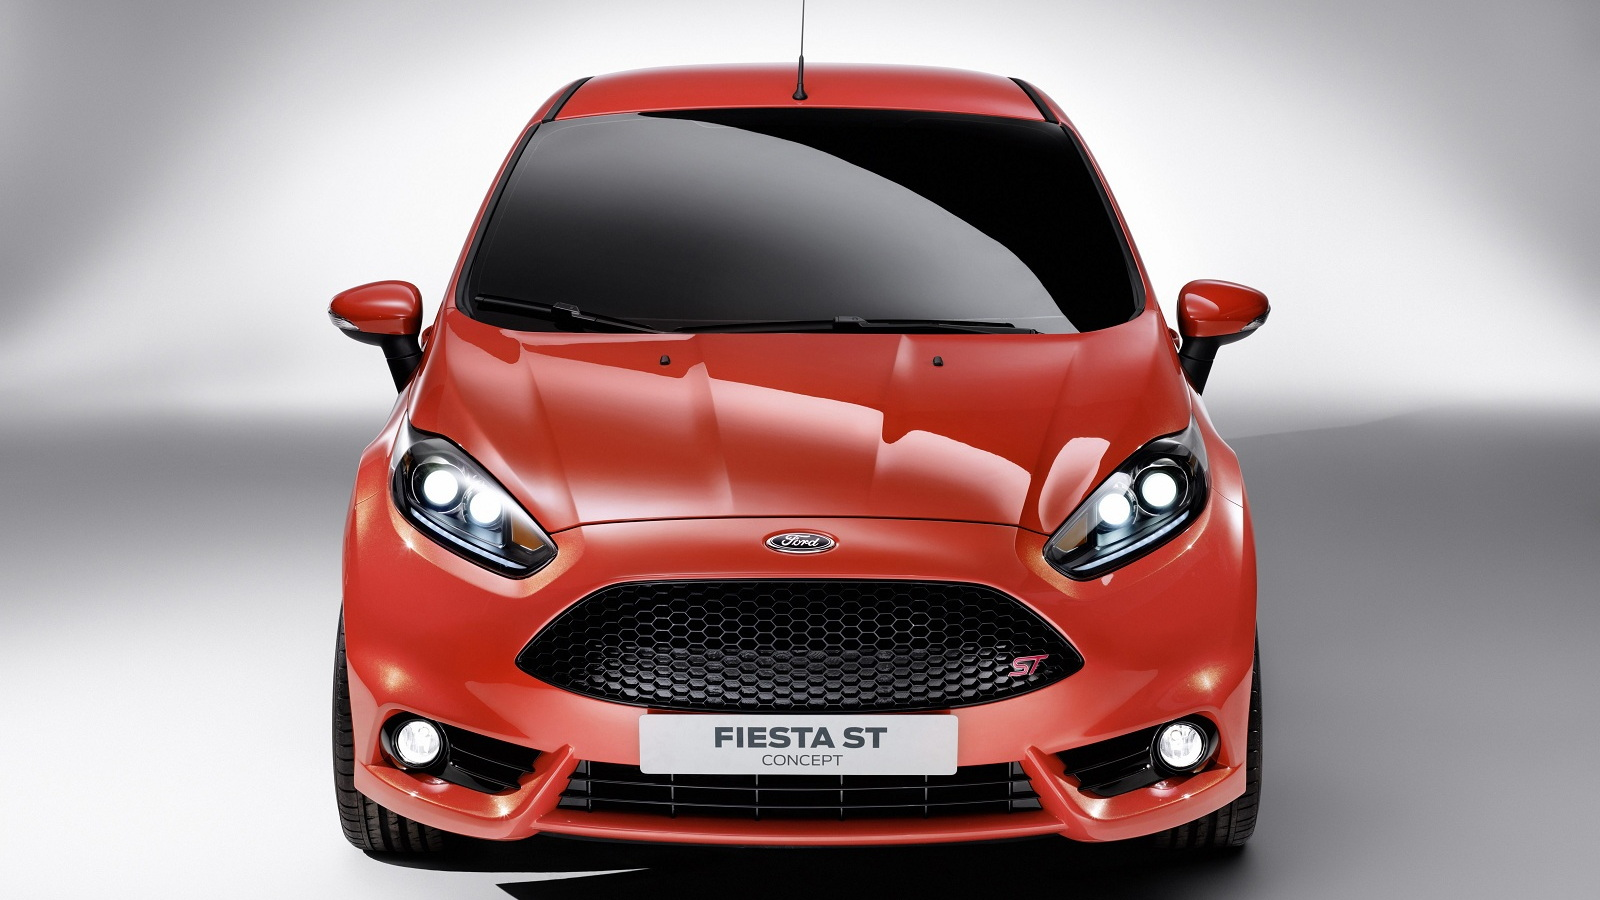 Ford Fiesta ST Concept, to be shown at 2011 Los Angeles Auto Show